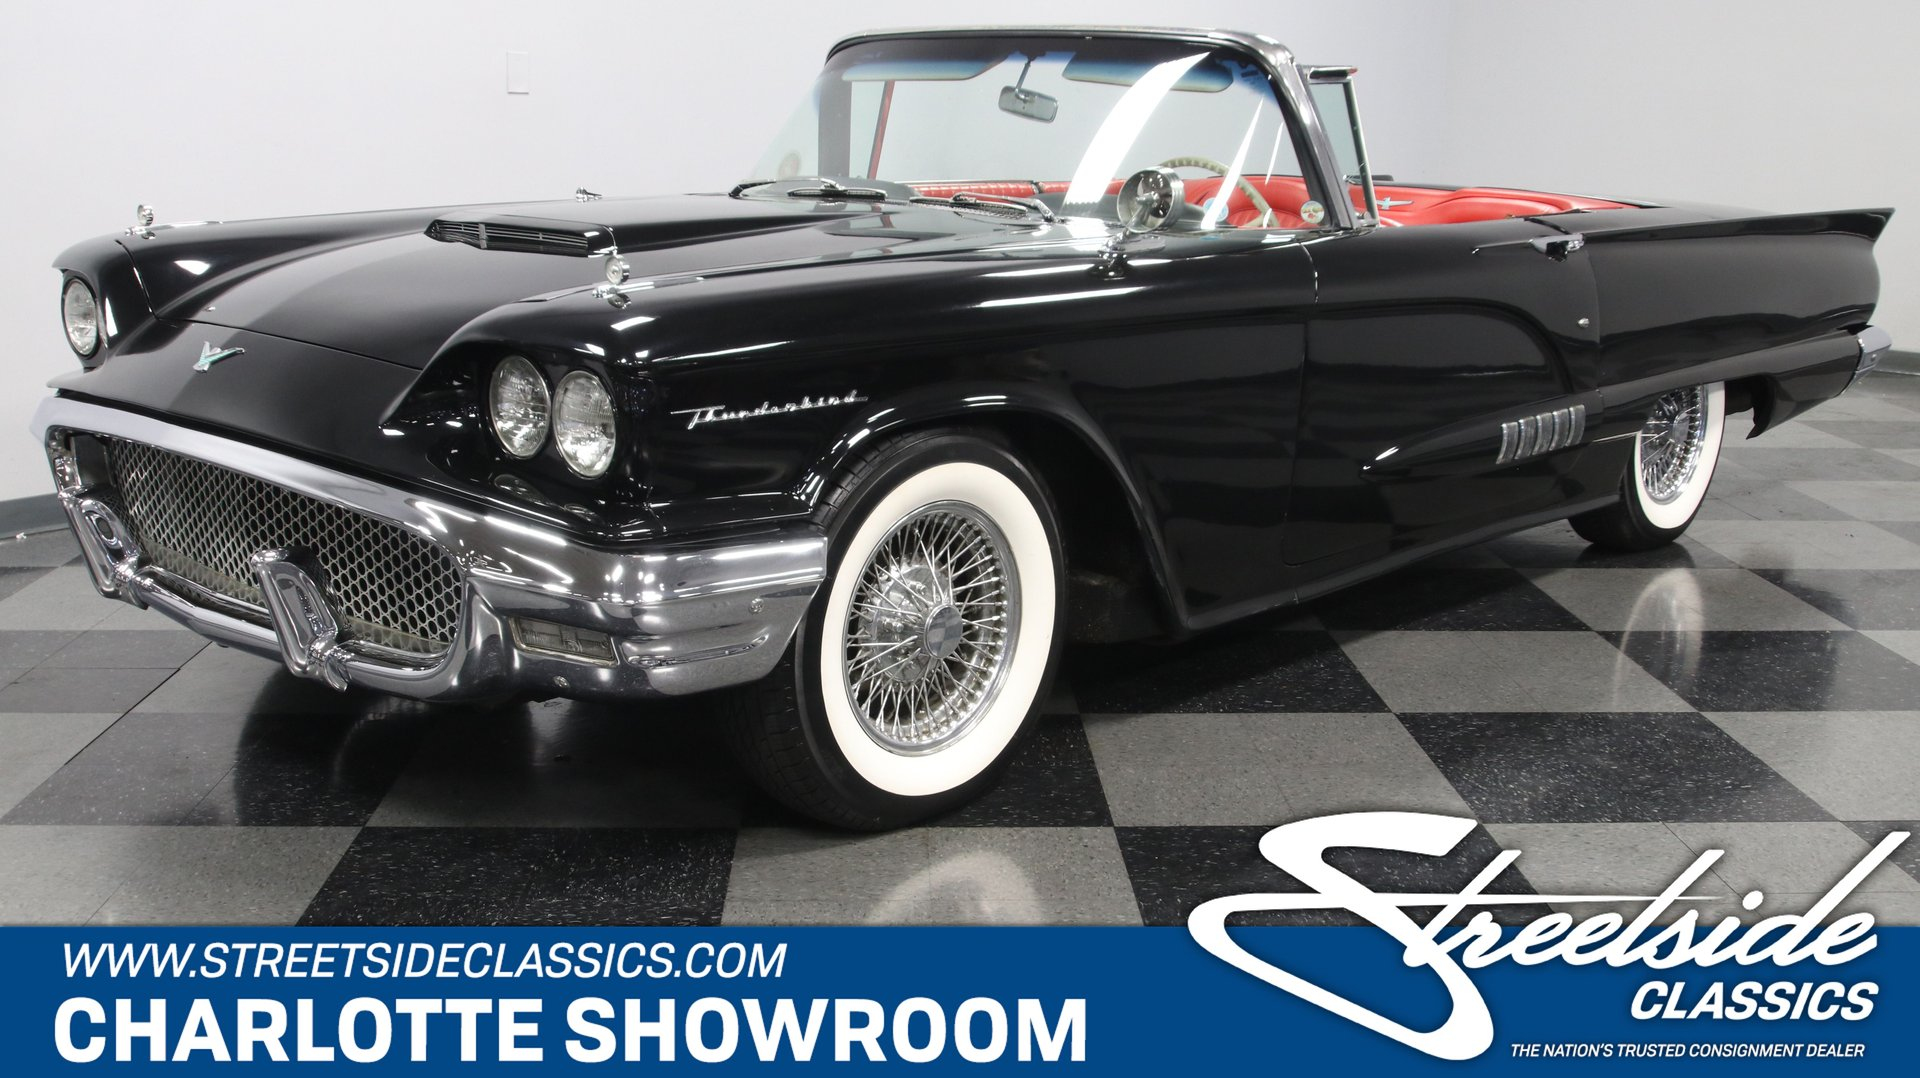 1958 Ford Thunderbird Classic Cars For Sale Streetside Classics The Nation S 1 Consignment Dealer